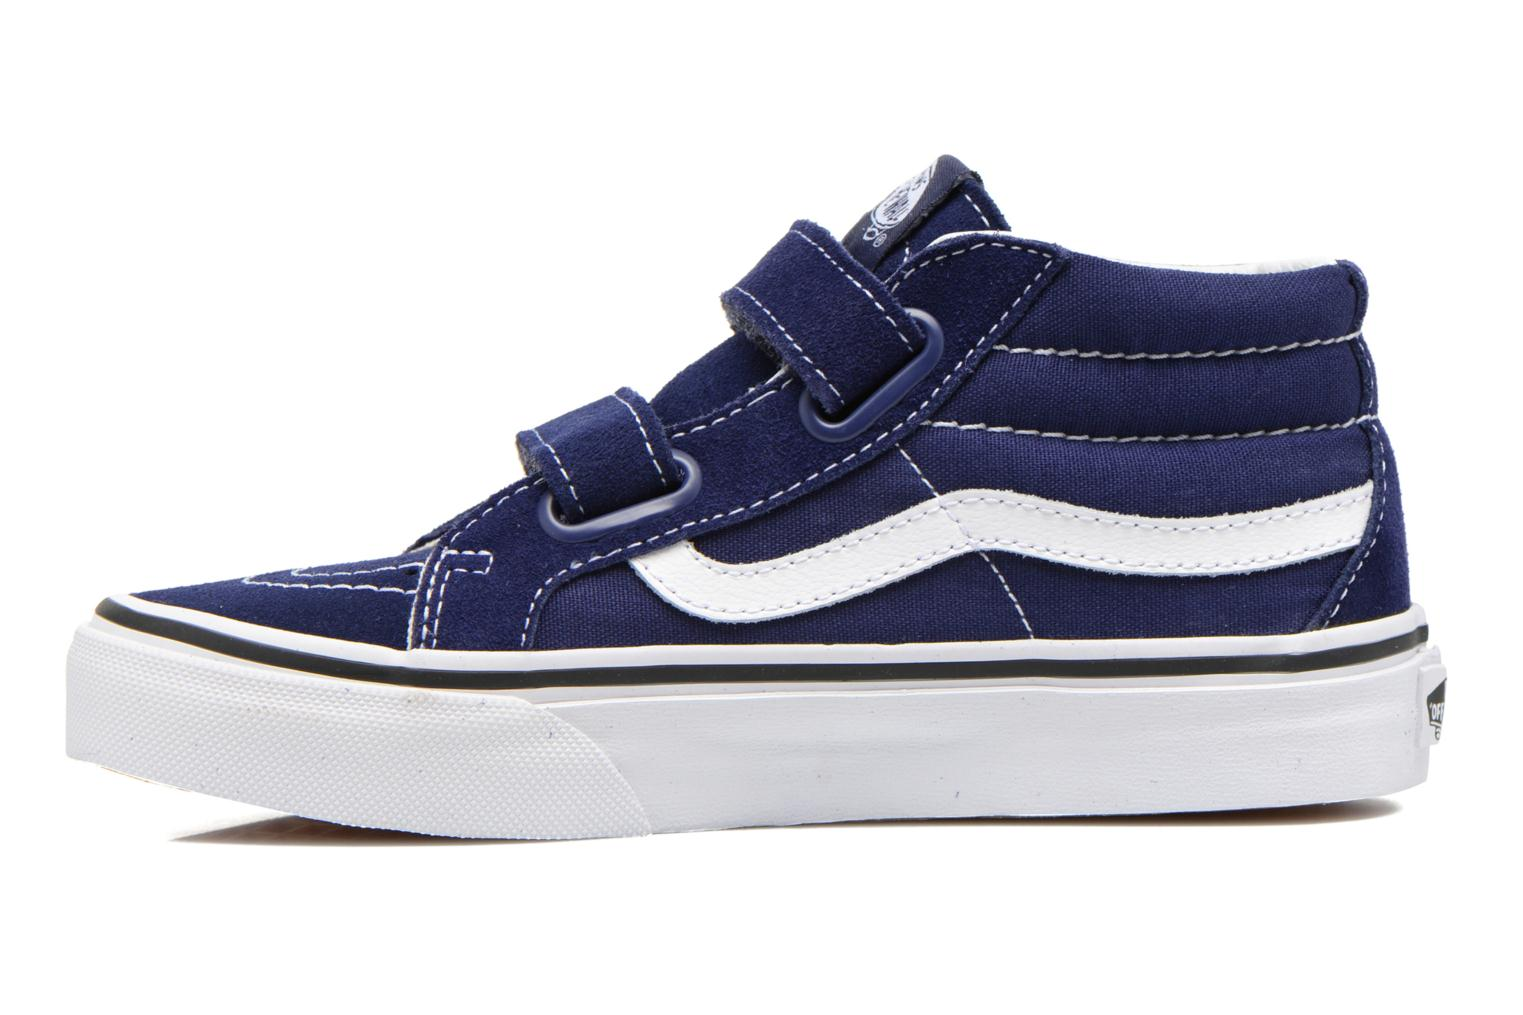 Flying Ace/Dress Blues (Peanuts) Vans SK8-Mid Reissue V (Bleu)